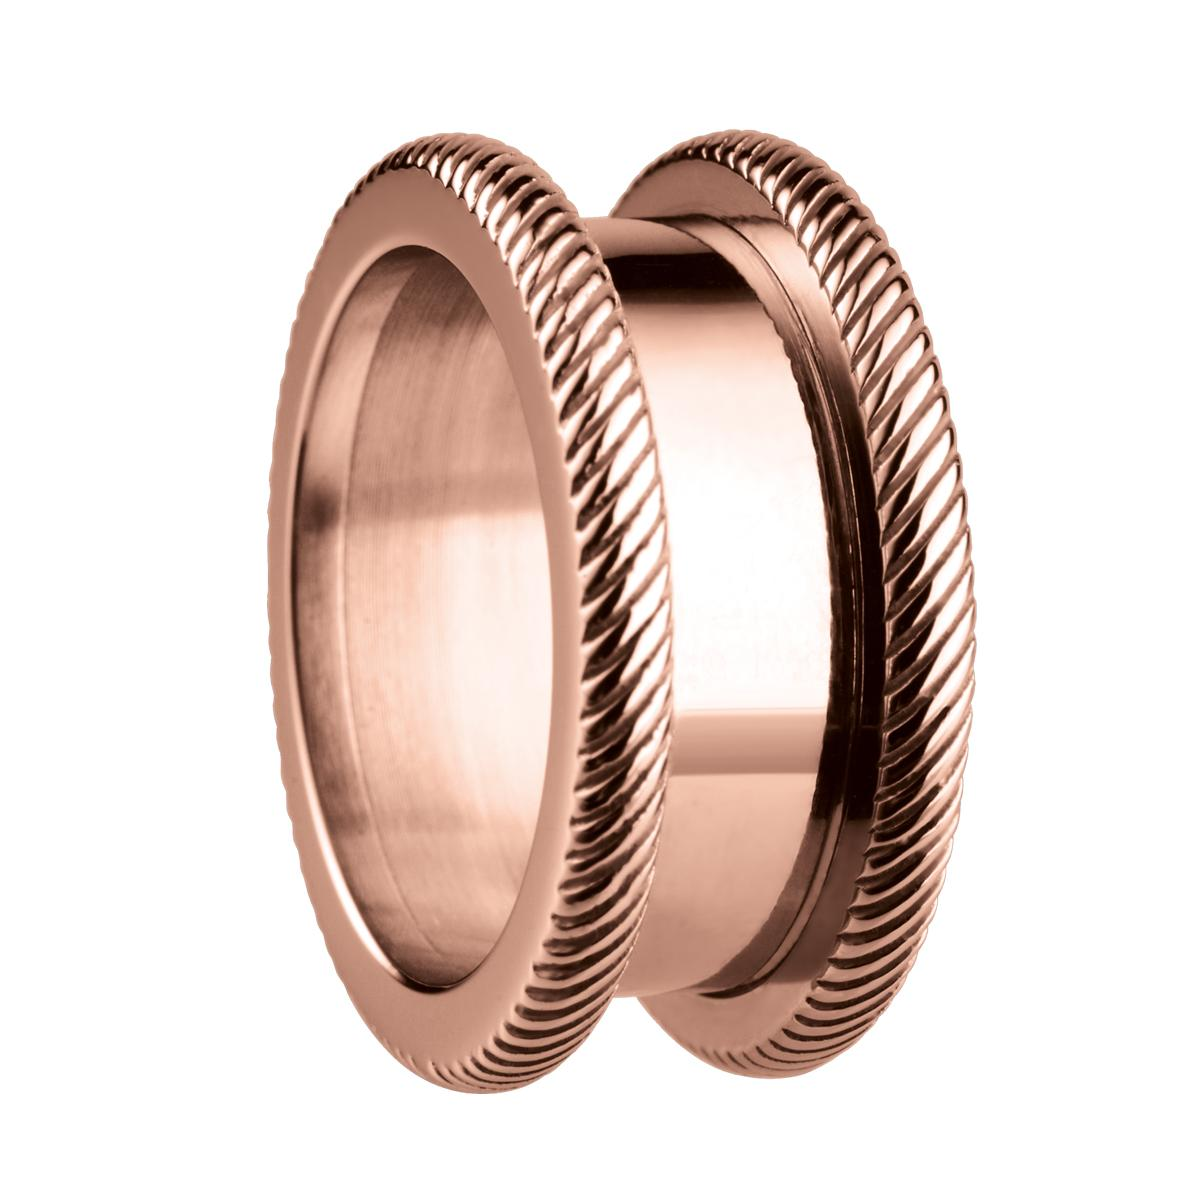 Bering Outer Ring 5213094 1